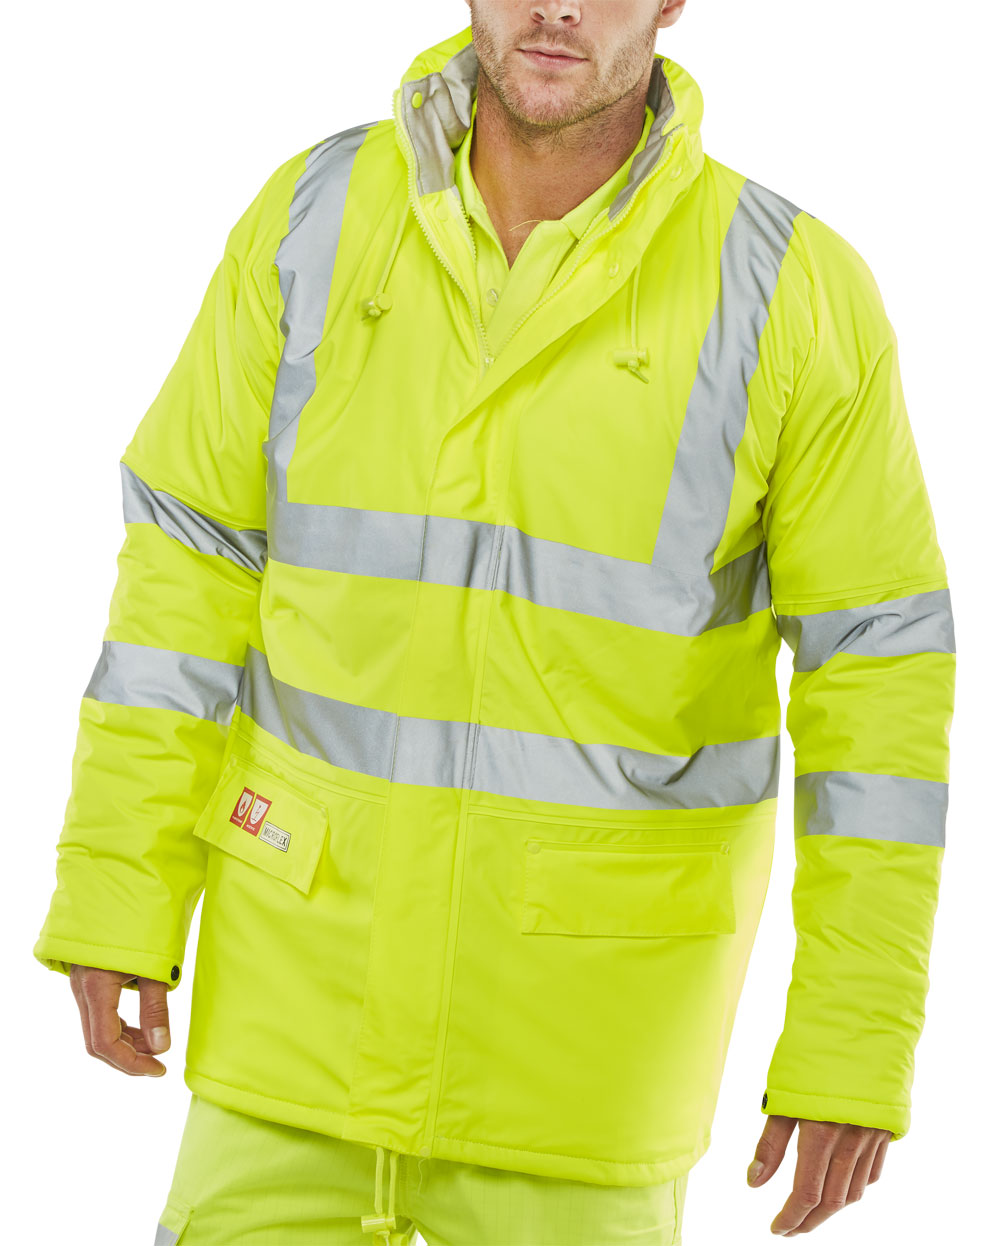 FIRE RETARDANT ANTI-STATIC PADDED JACKET - CFRLR3456